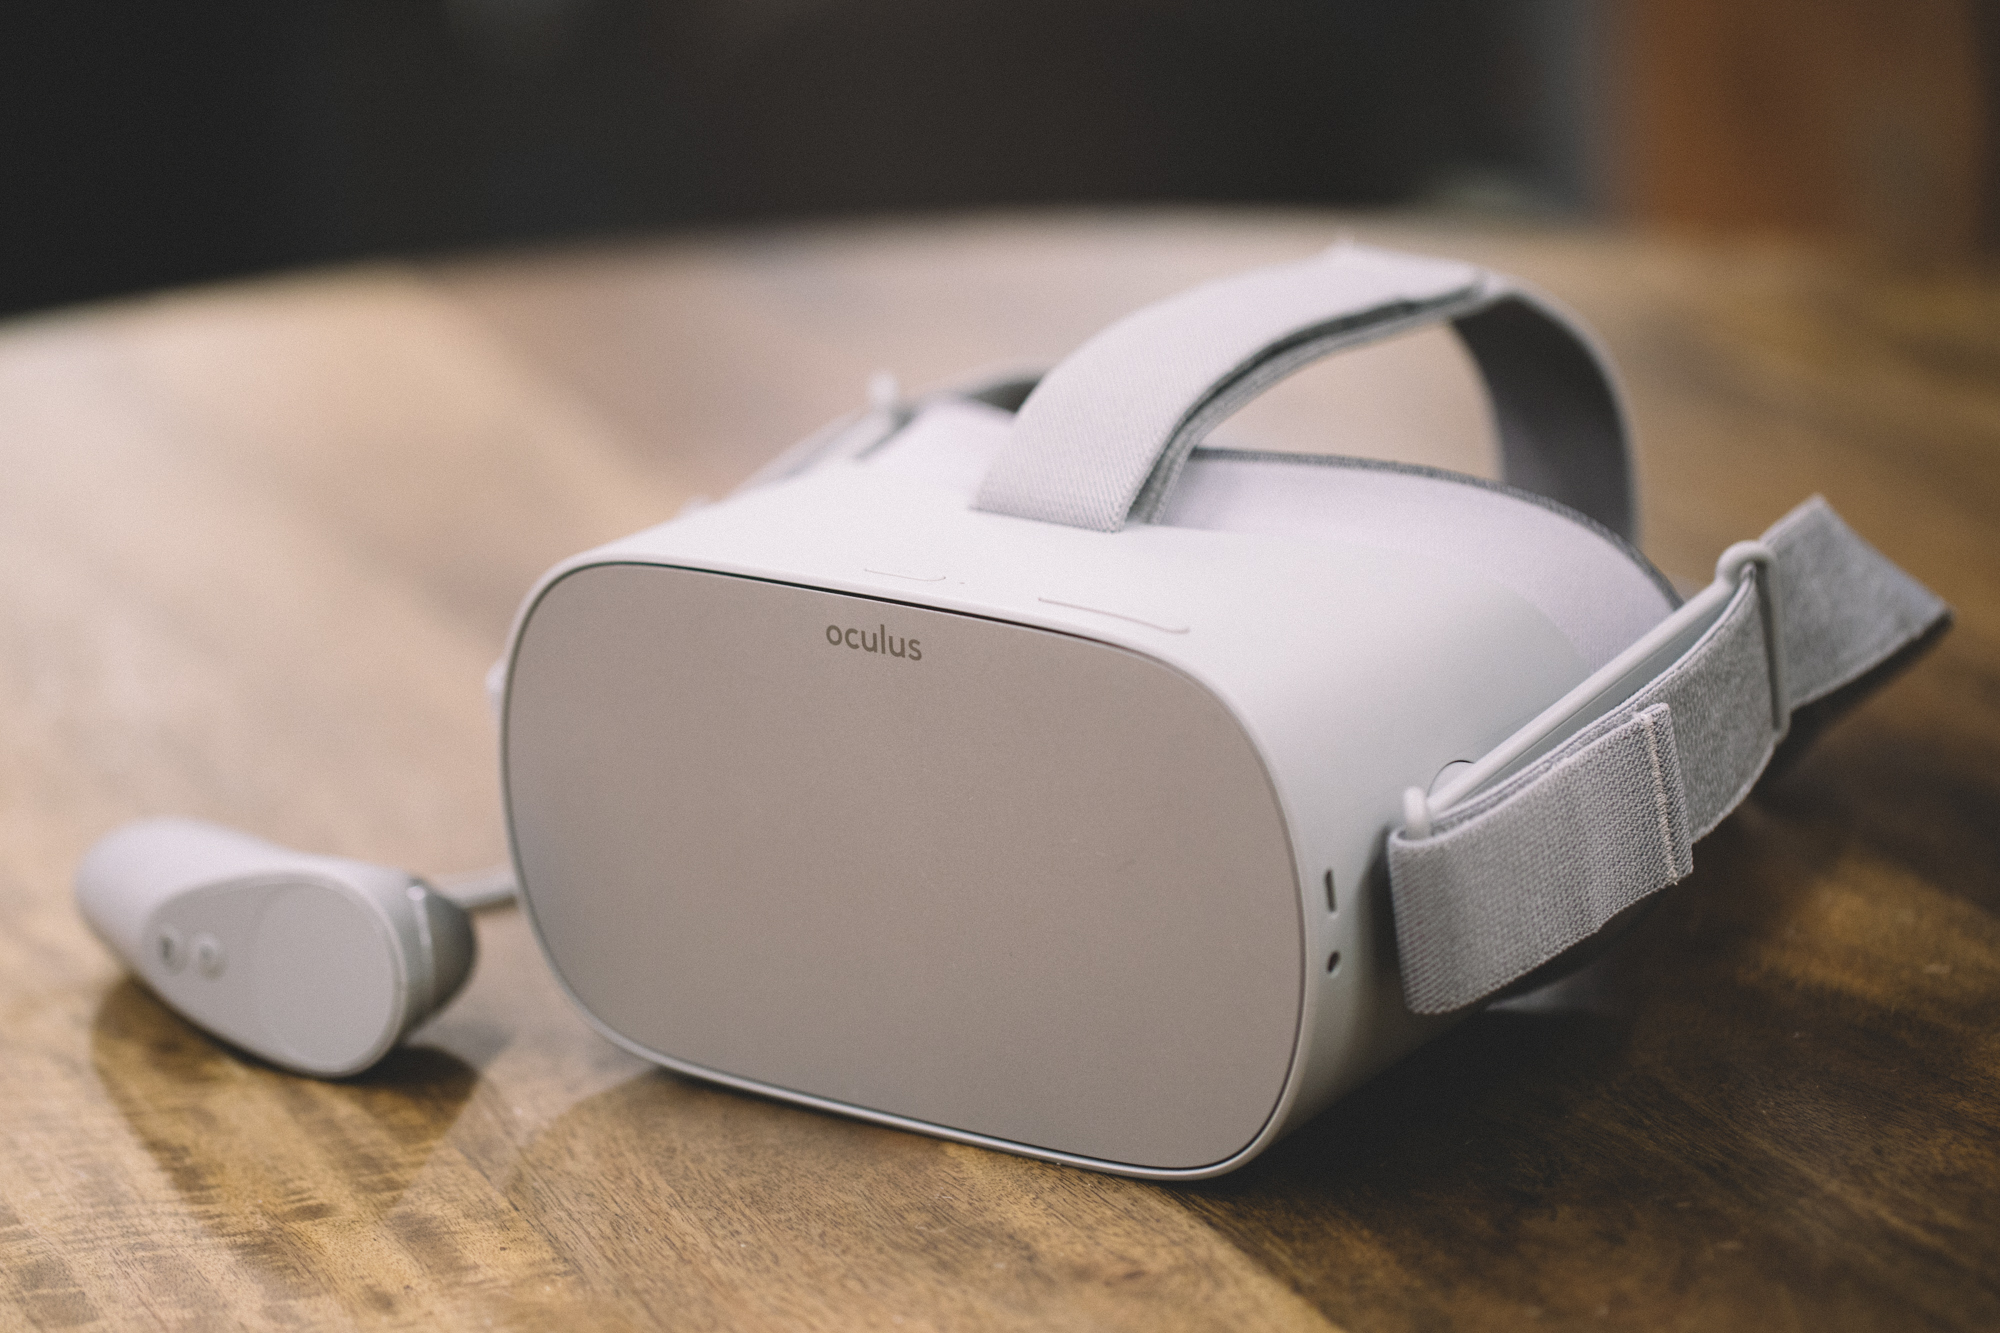 $199 Oculus Go VR headset goes on sale today | TechCrunch